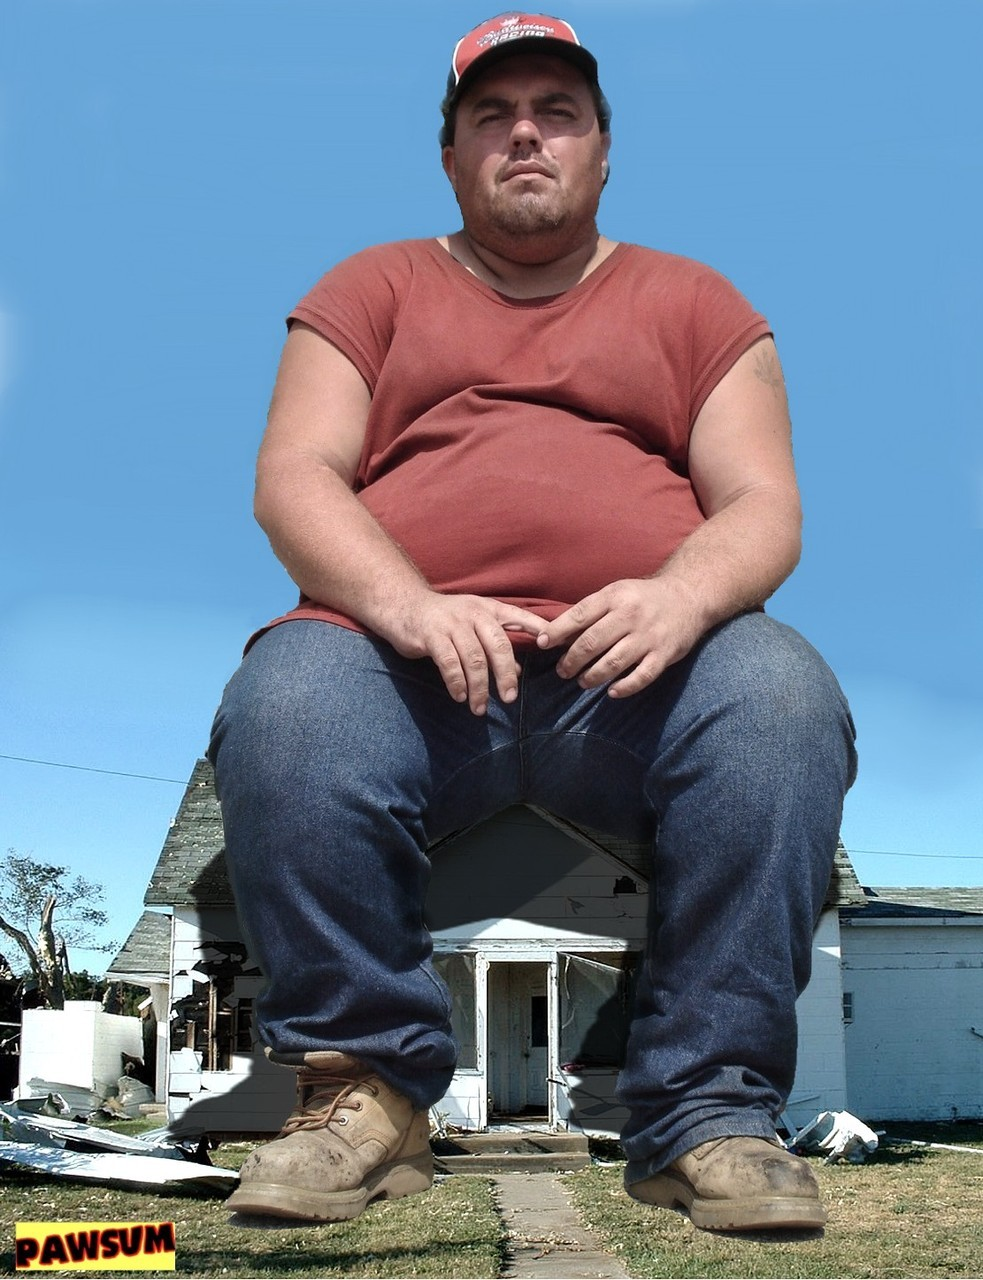 Image result for a picture of a giant person